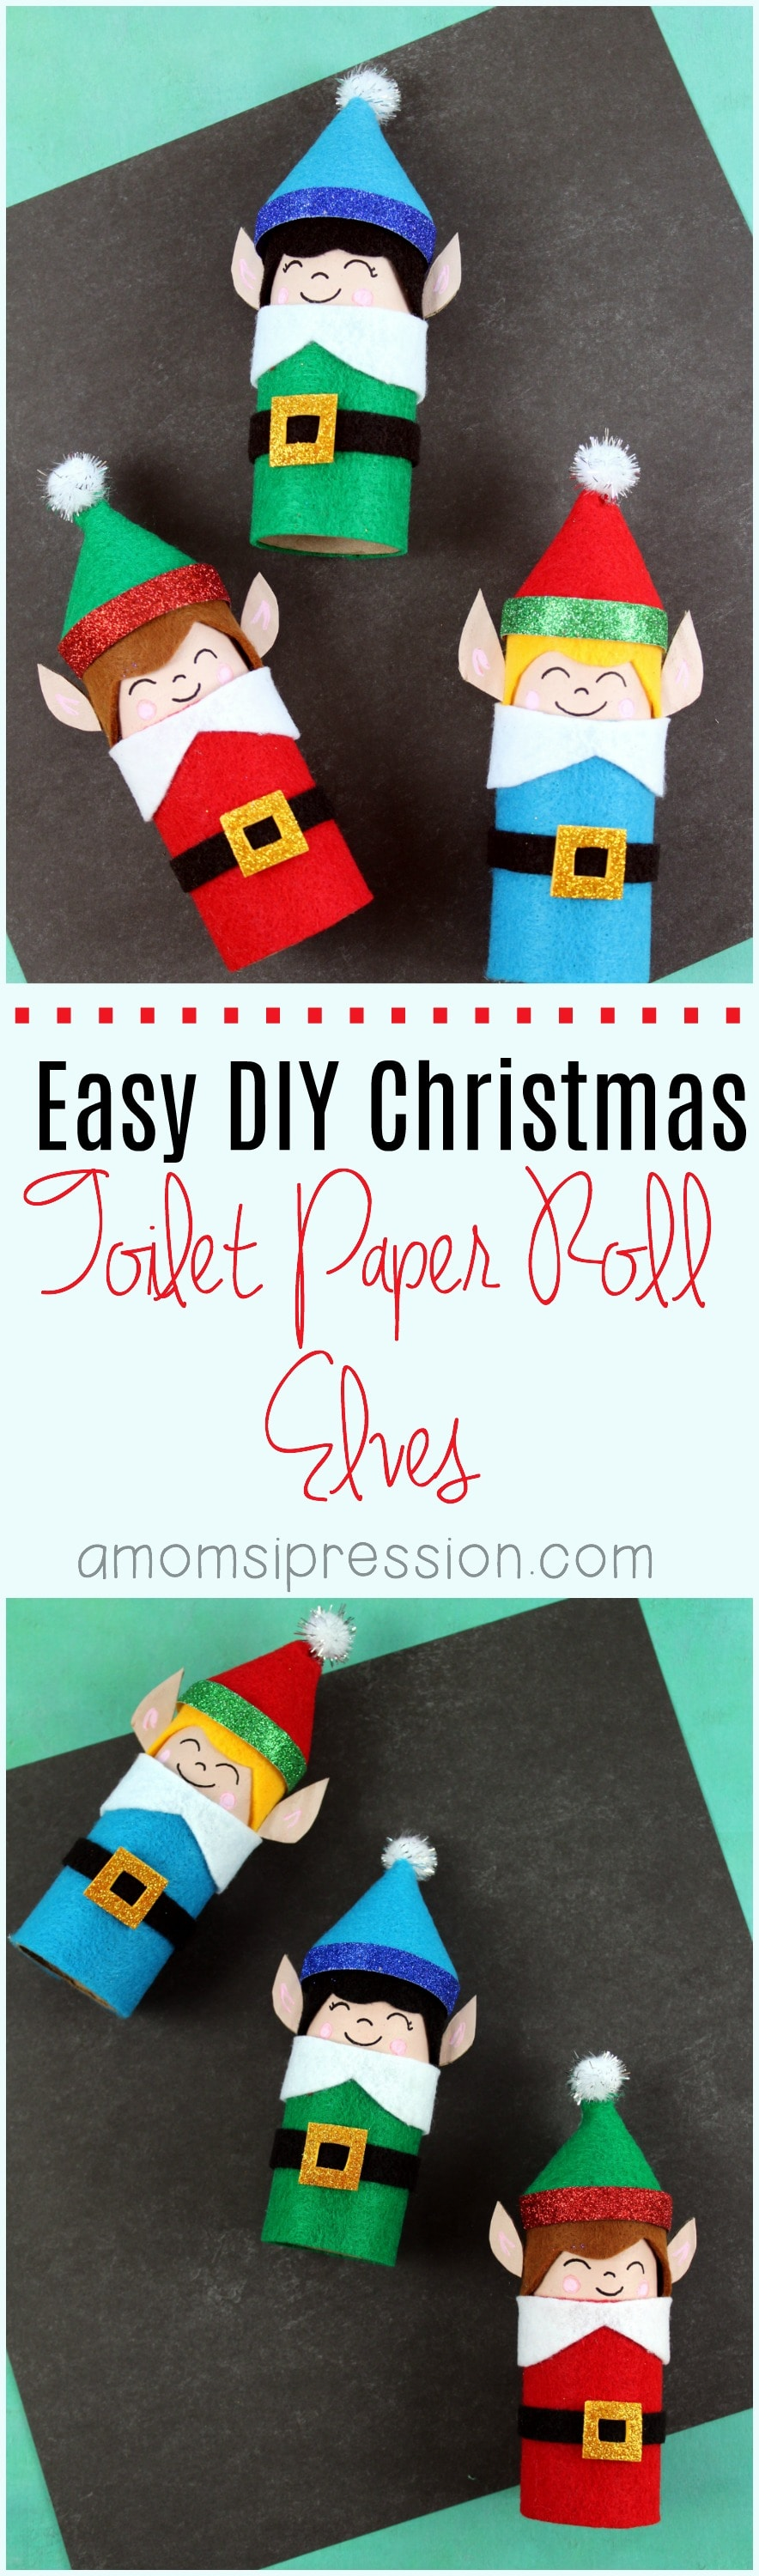 Adorable DIY Christmas toilet paper roll elves are easy crafts that you can make with your kids. They are perfect for gifts for grandparents, or they could easily be turned into ornaments for the tree. #Christmas #Crafts